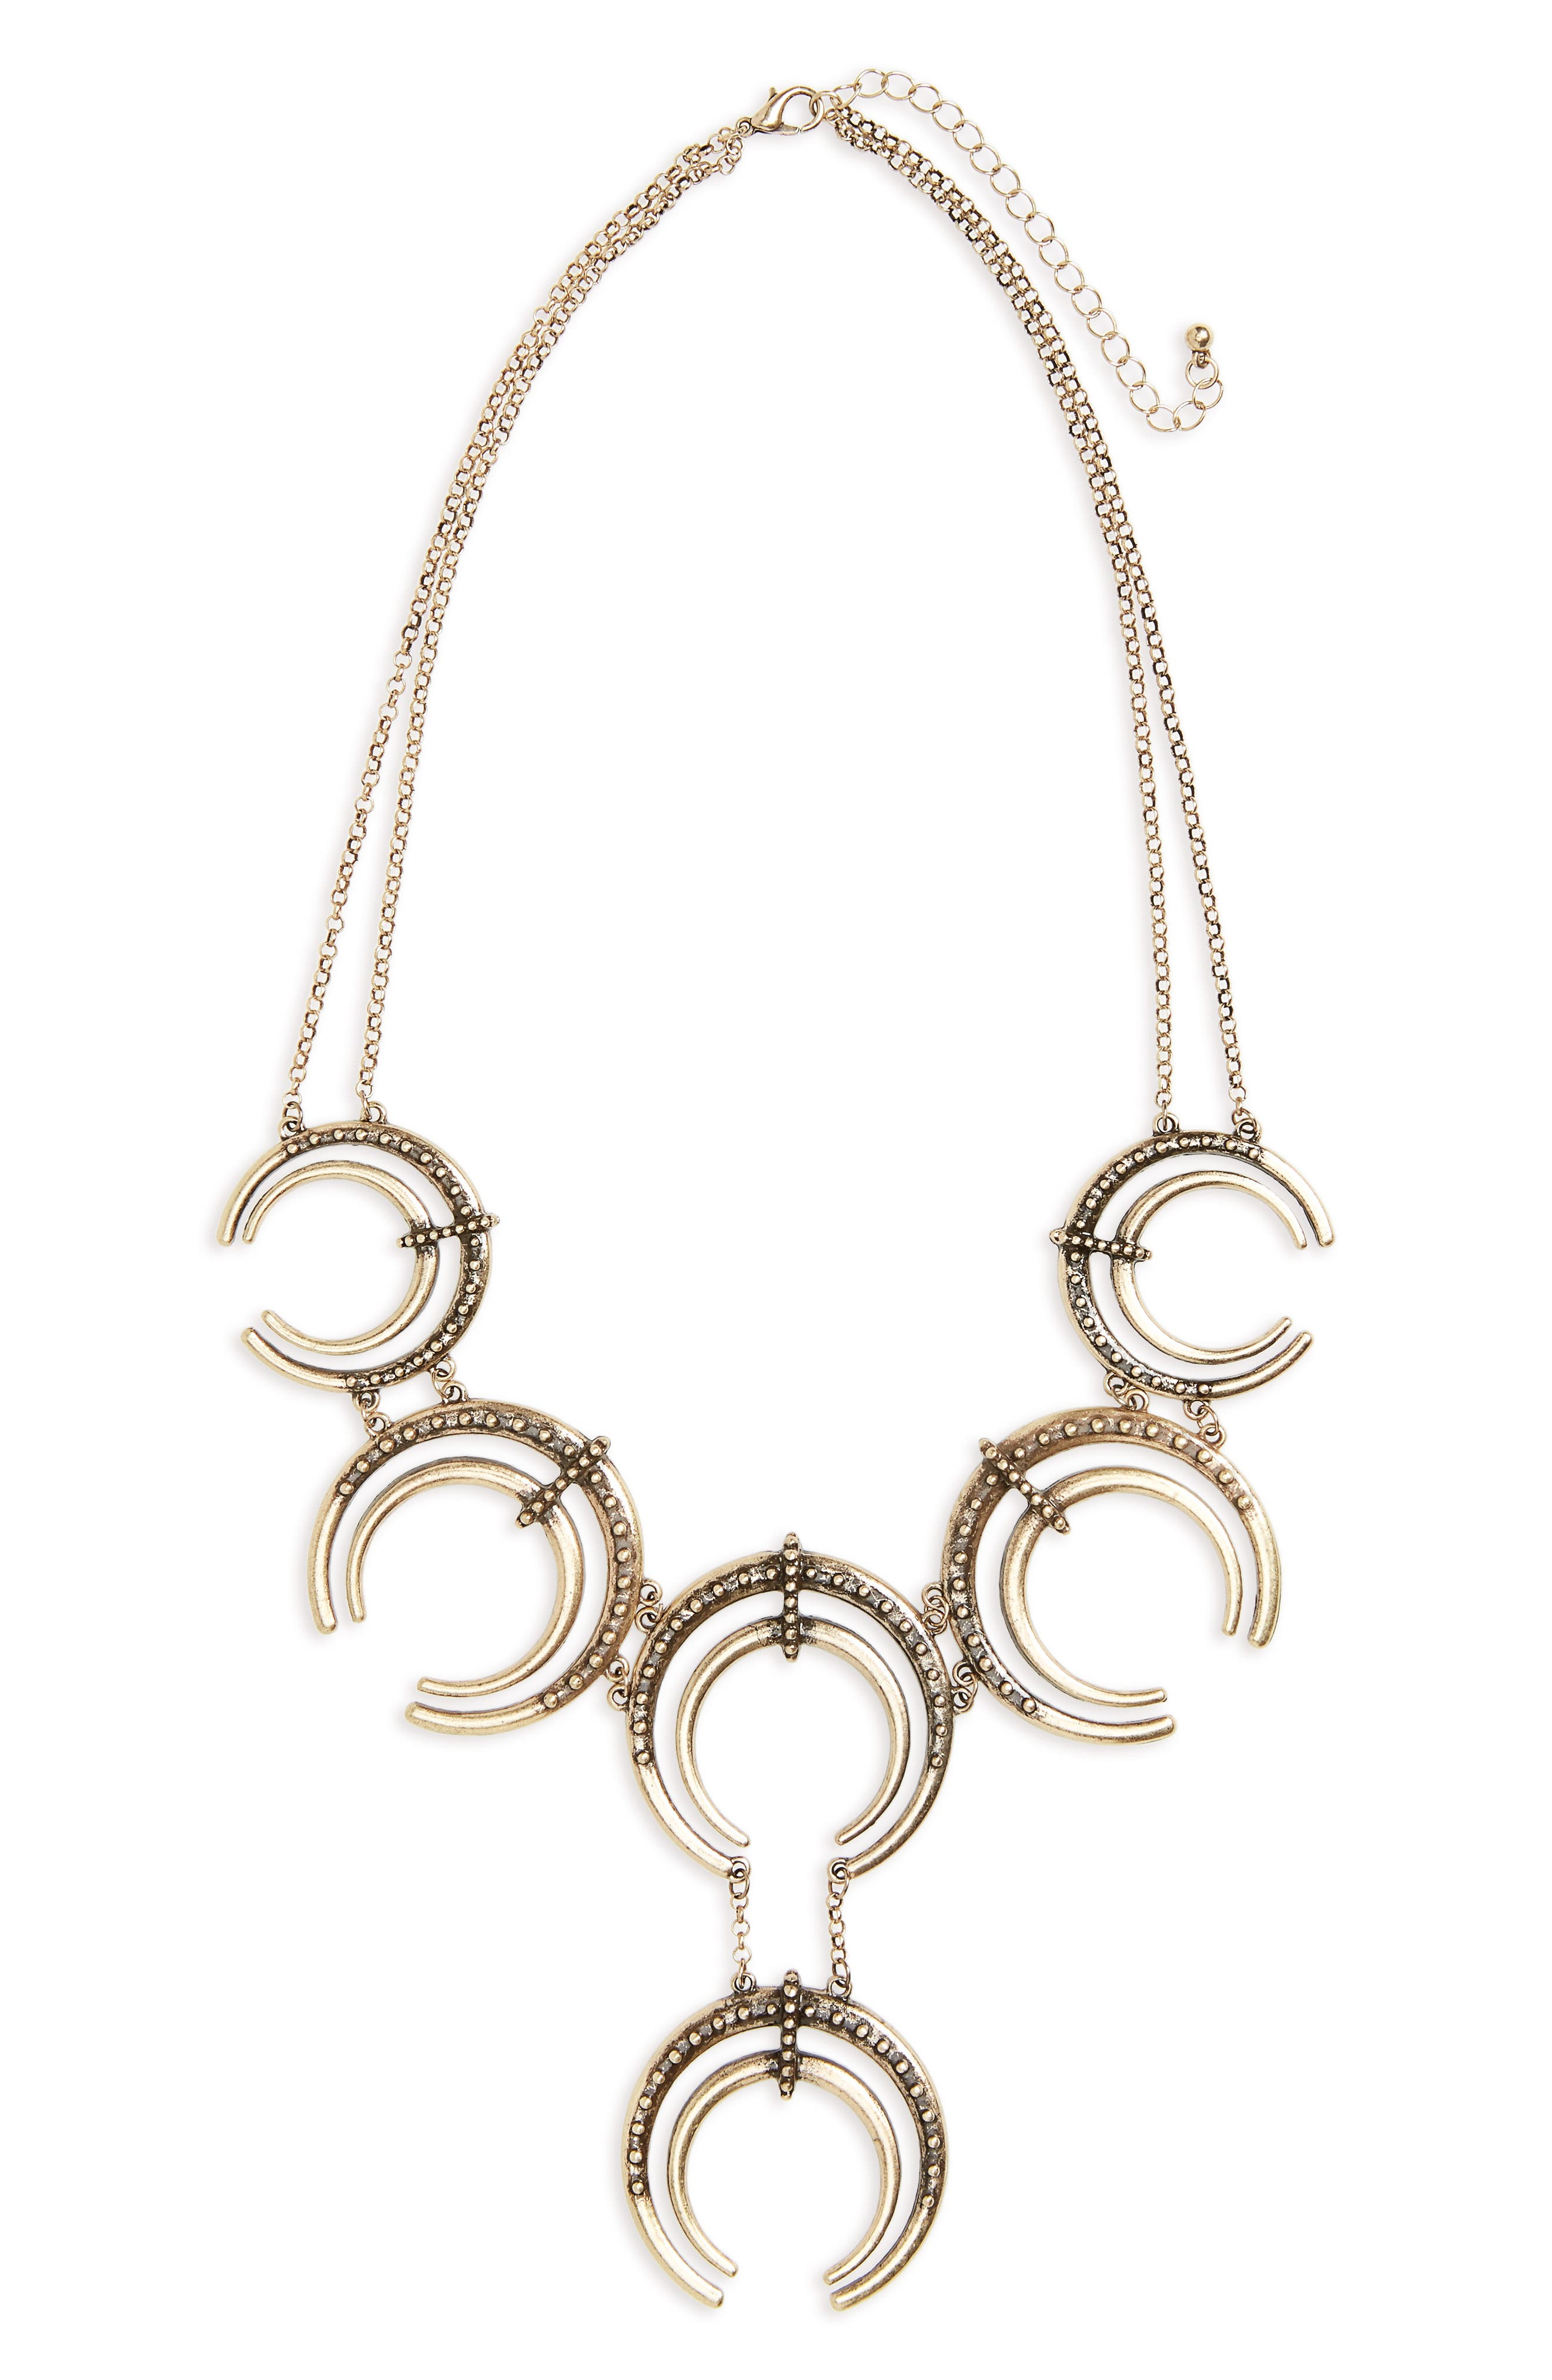 Panacea Horn Statement Necklace